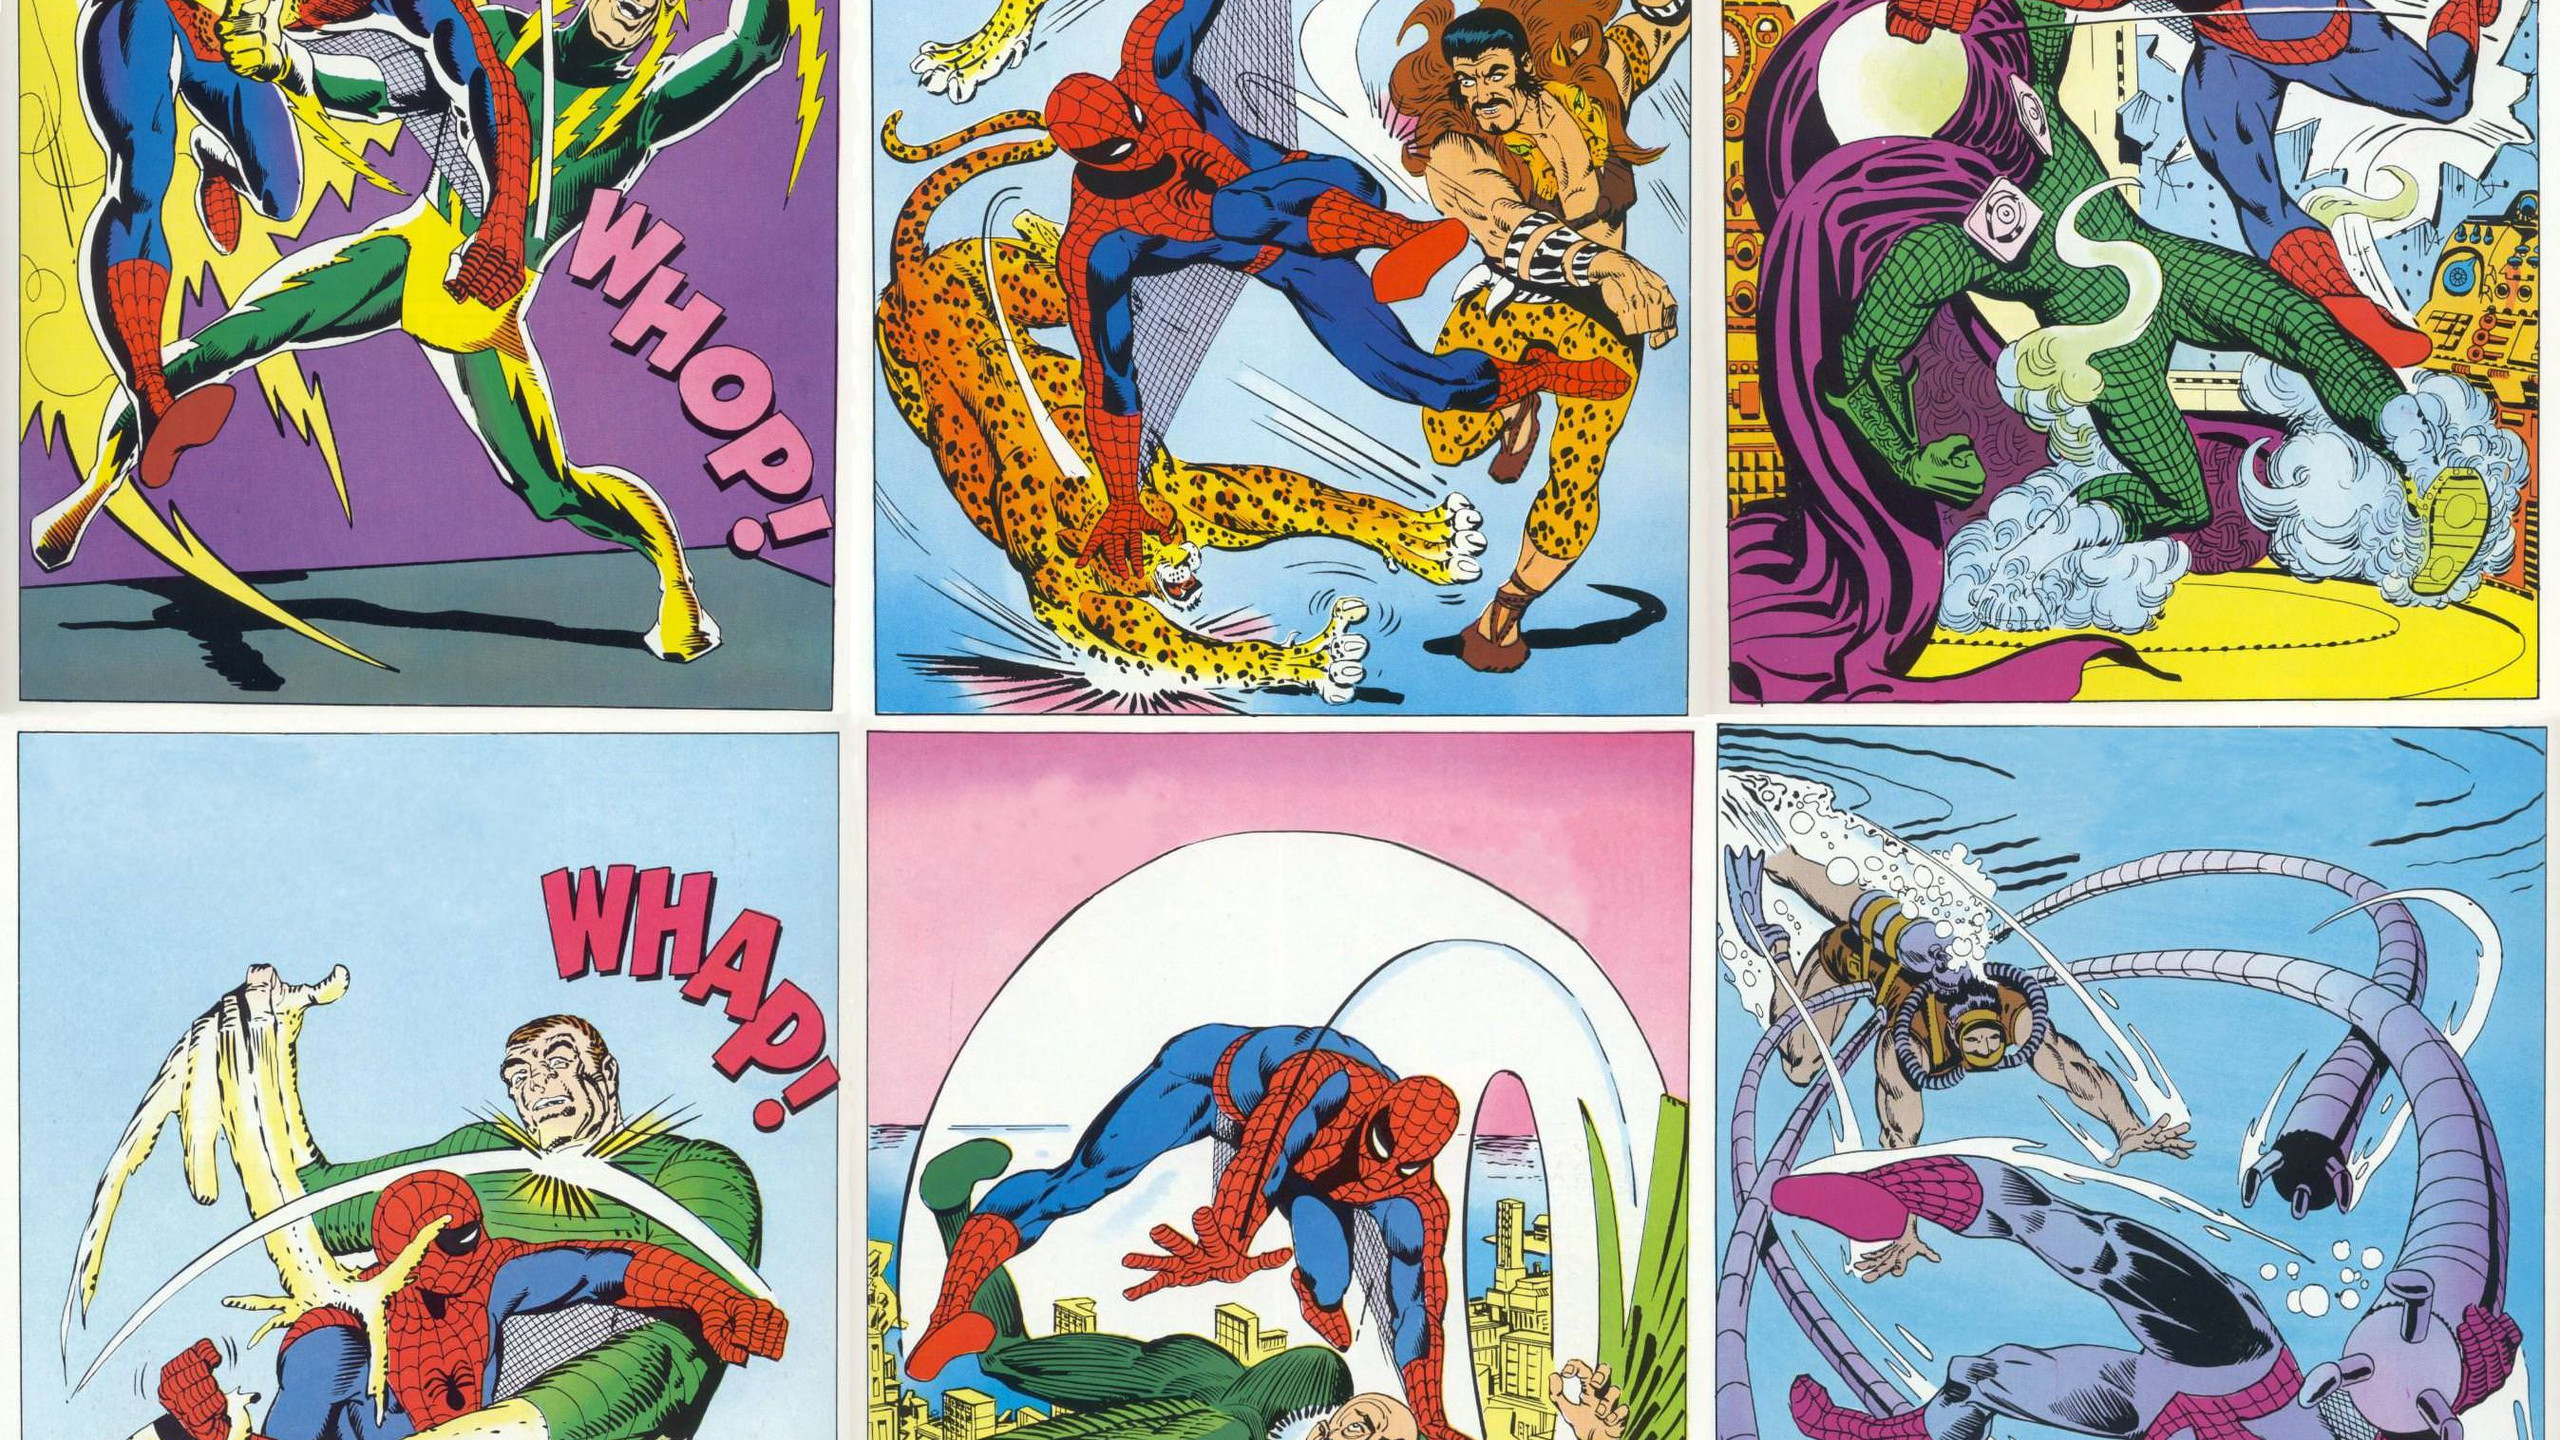 Spidey Vs. The Sinister Six